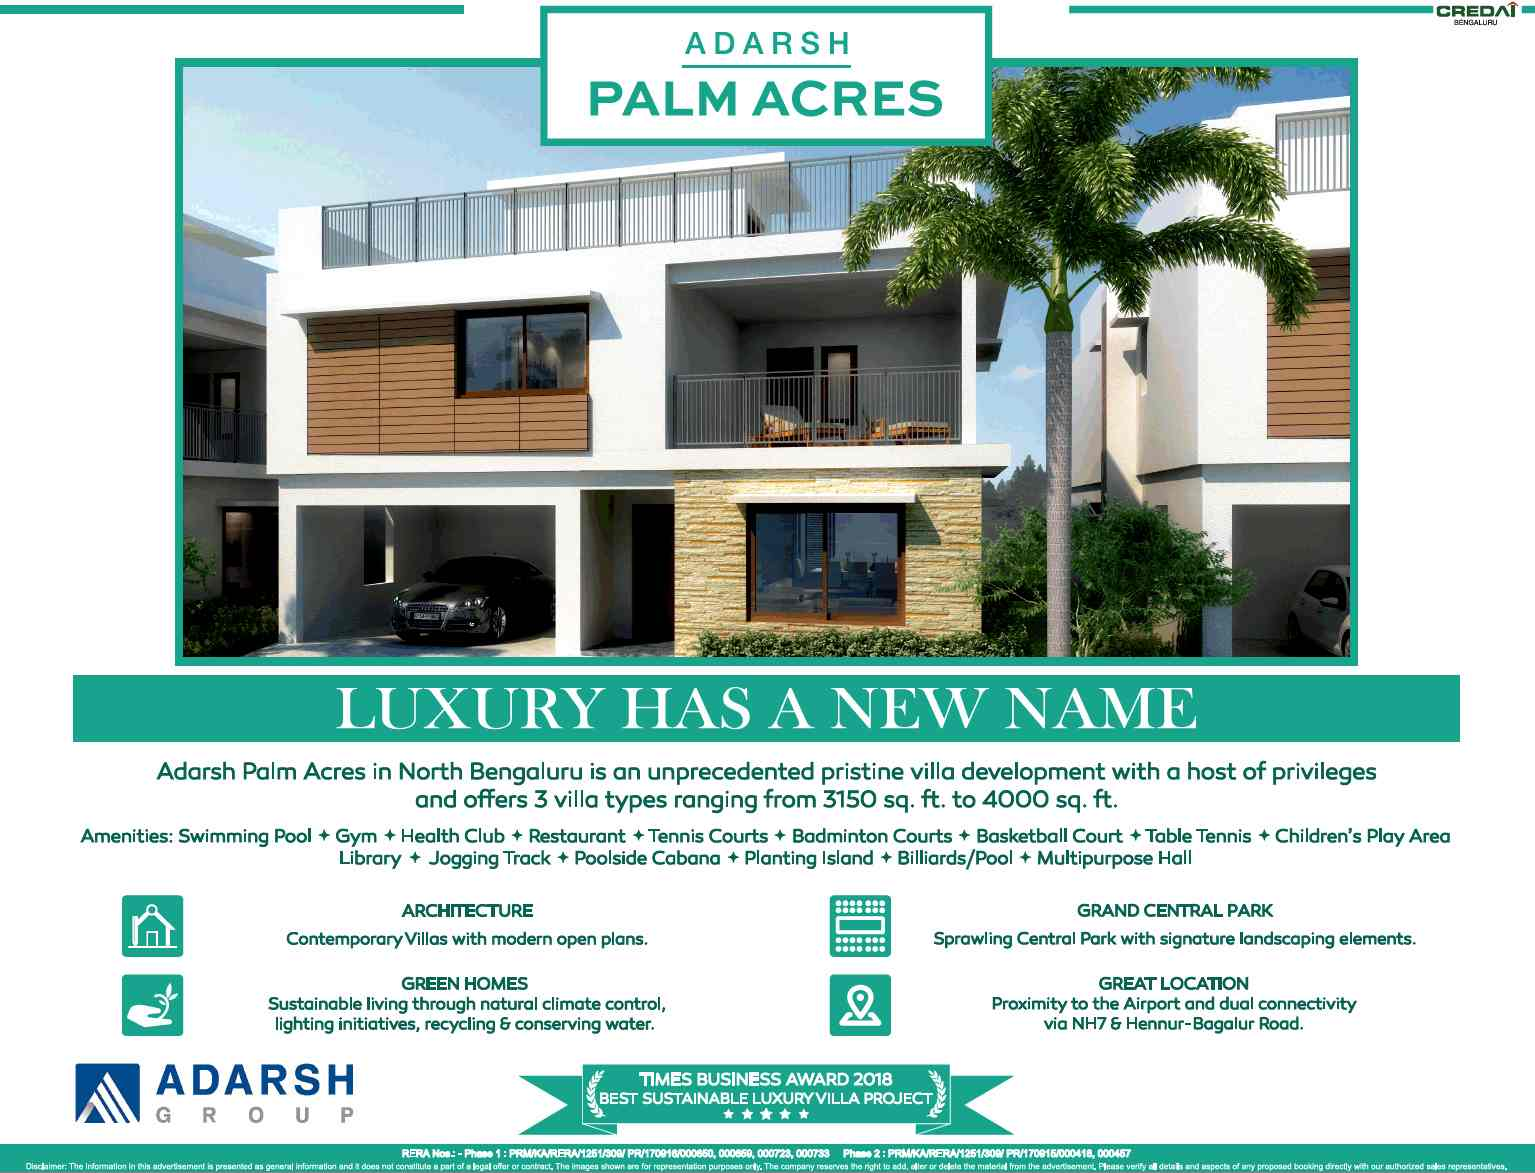 Book pristine 3 BHK villa at Adarsh Palm Acres in Bangalore